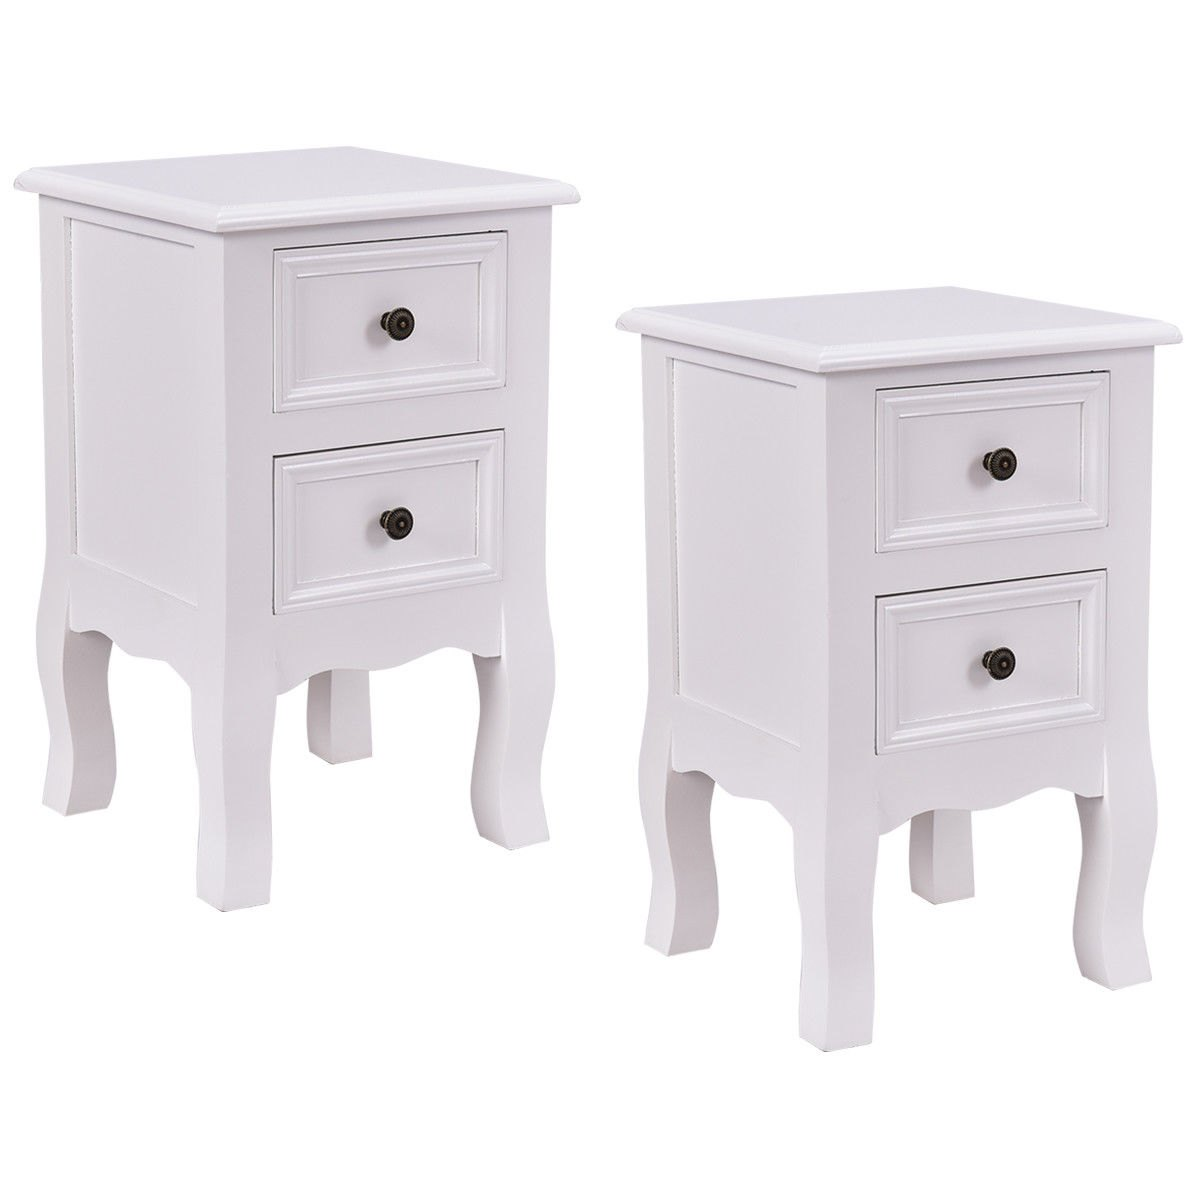 way white night stand storage drawers wood accent table nightstand end velvet chair target bar stools two tier round side ikea coffee and tables rustic with patio sofa clearance